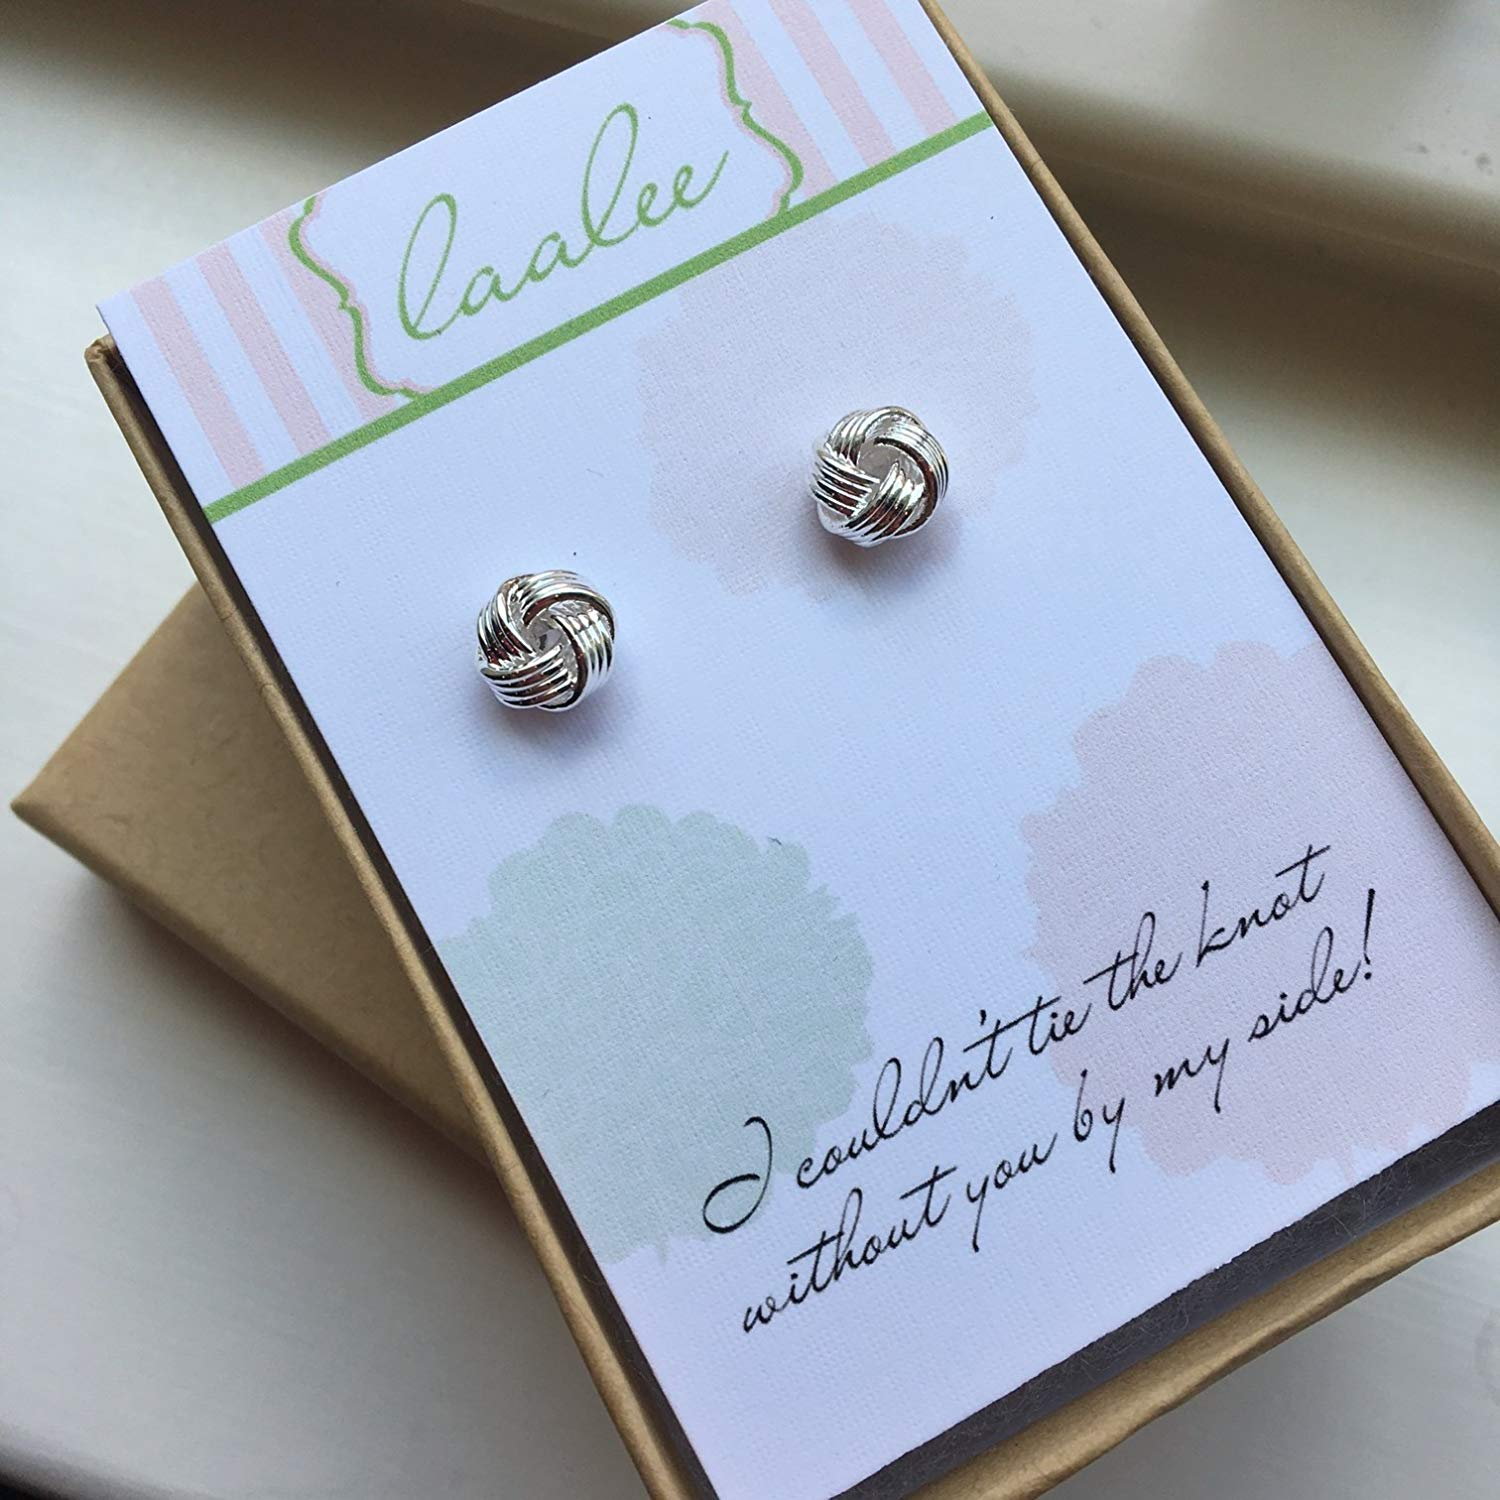 621020a37 Silver Knot Earrings Knot Jewelry Stud Earrings Post Earrings Bridesmaid  Card Gift Tie the Knot Card